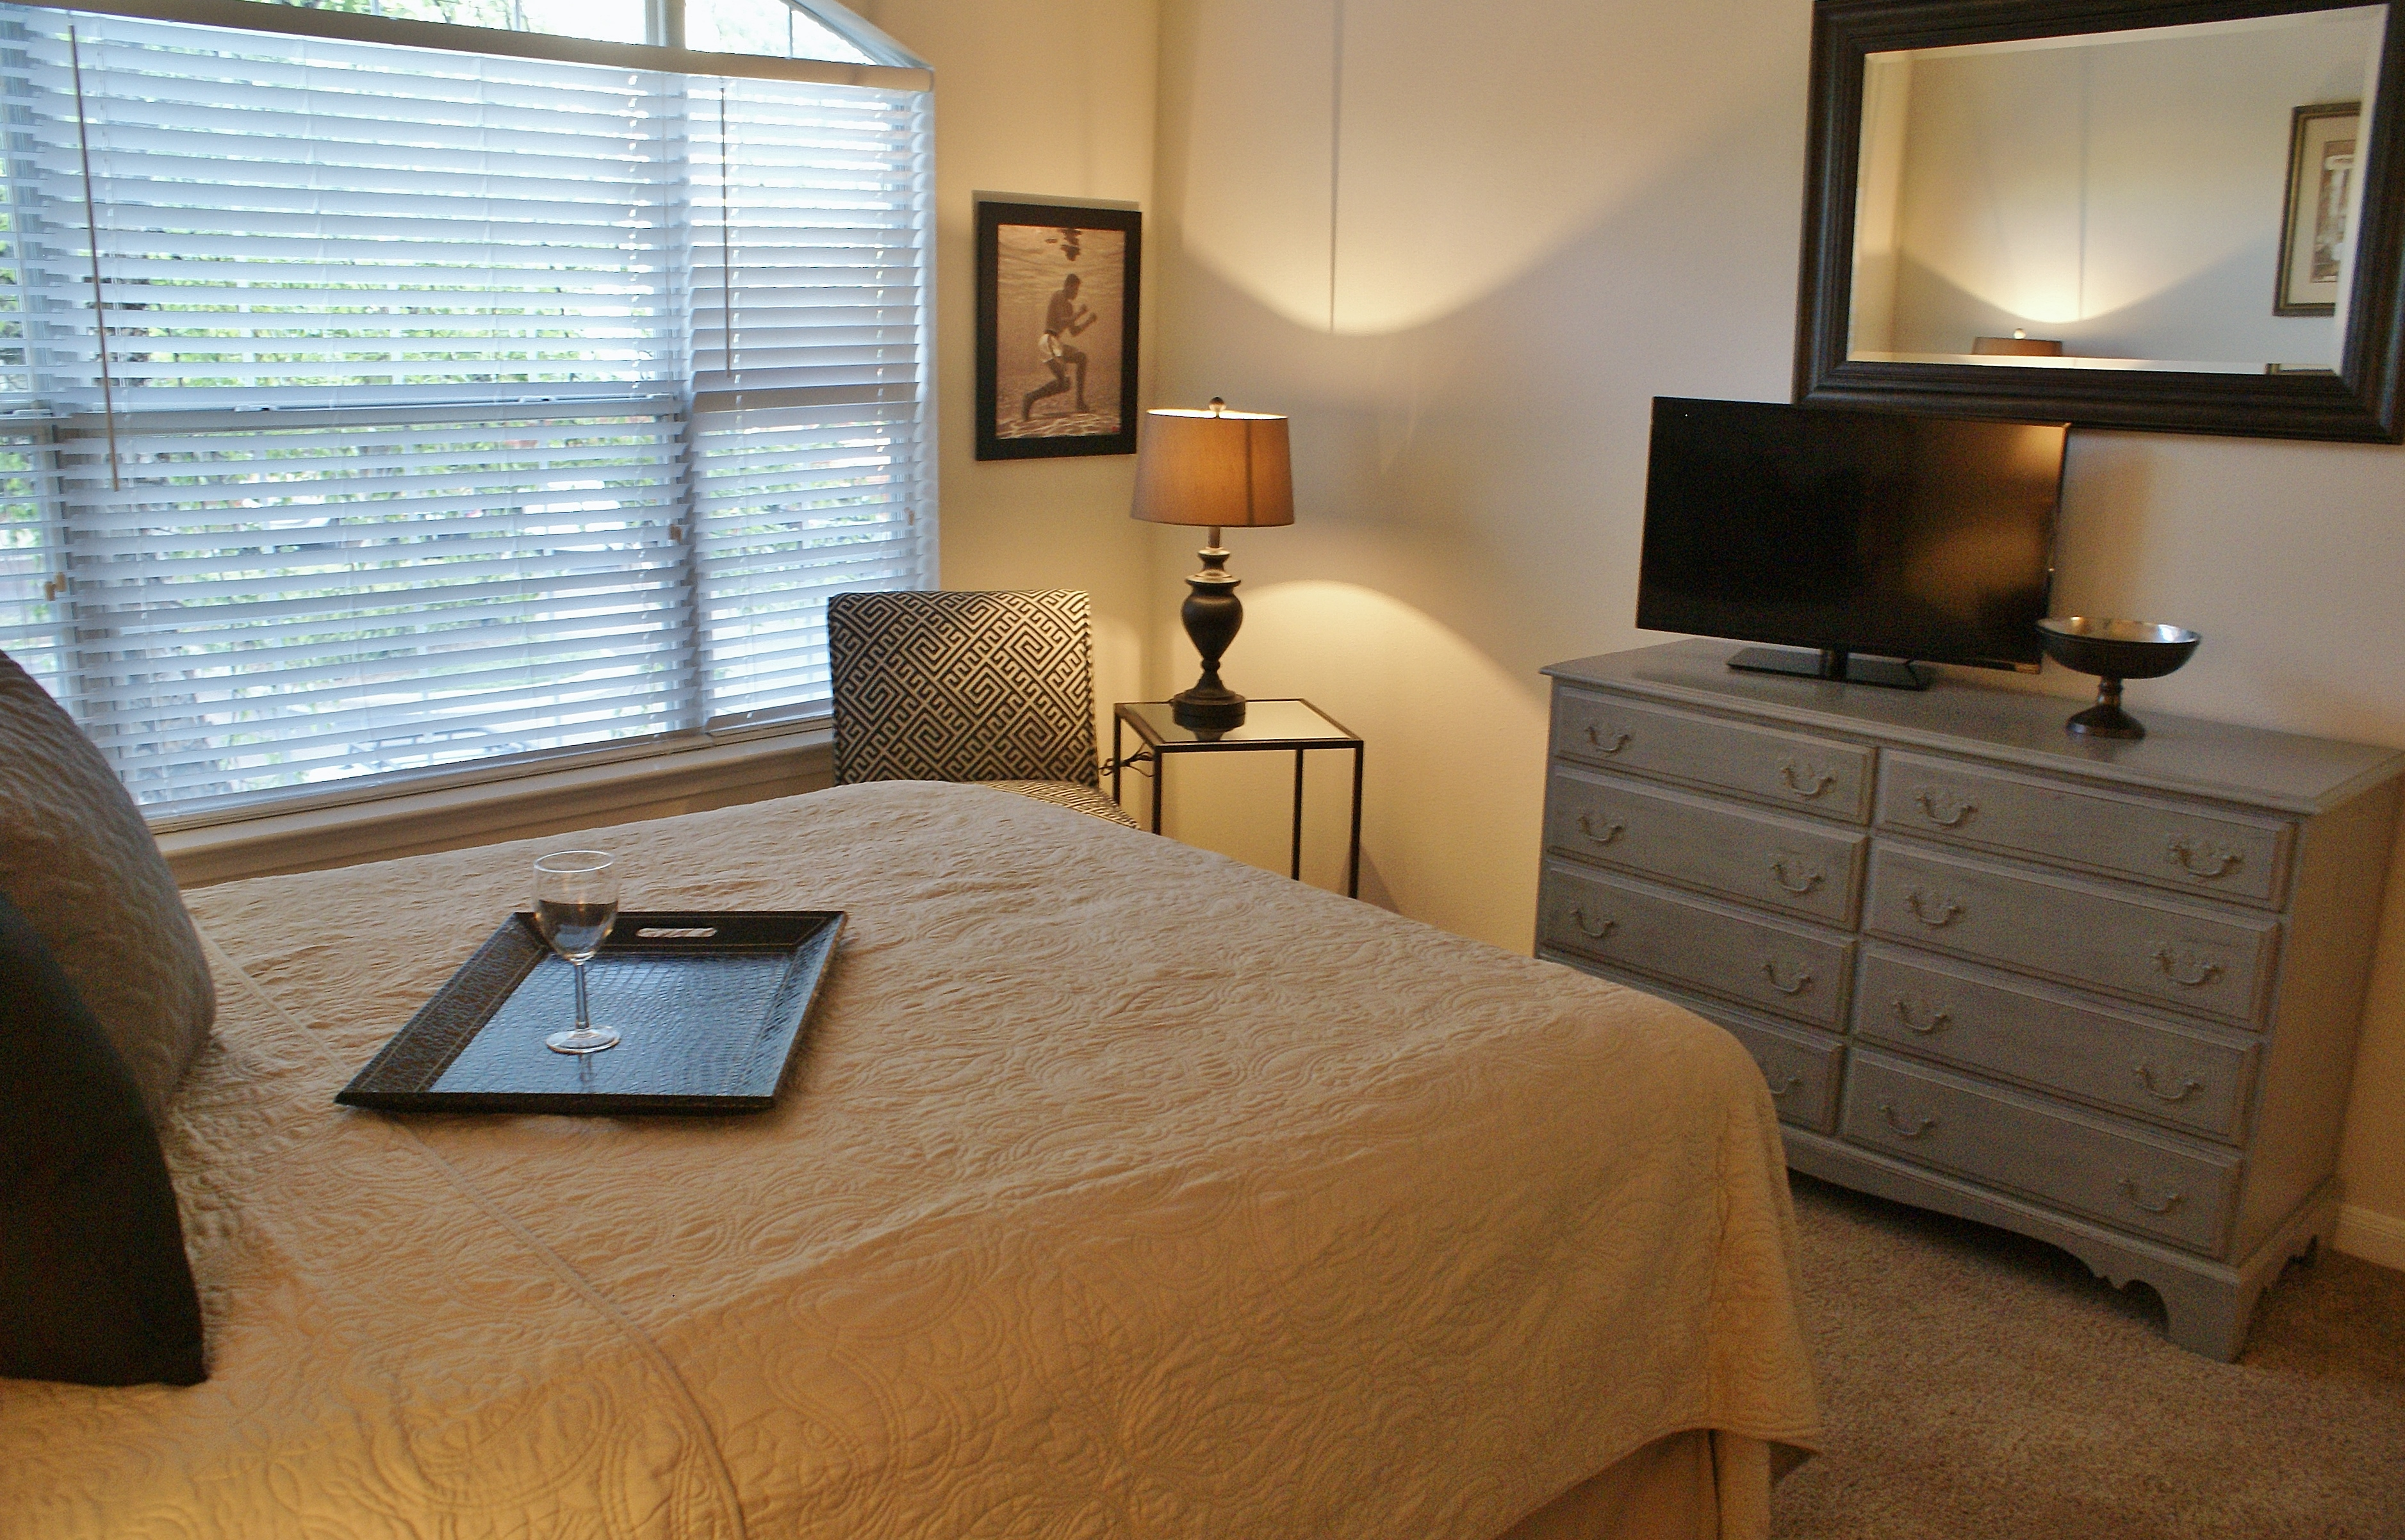 Bed linens, fully furnished, electronics included